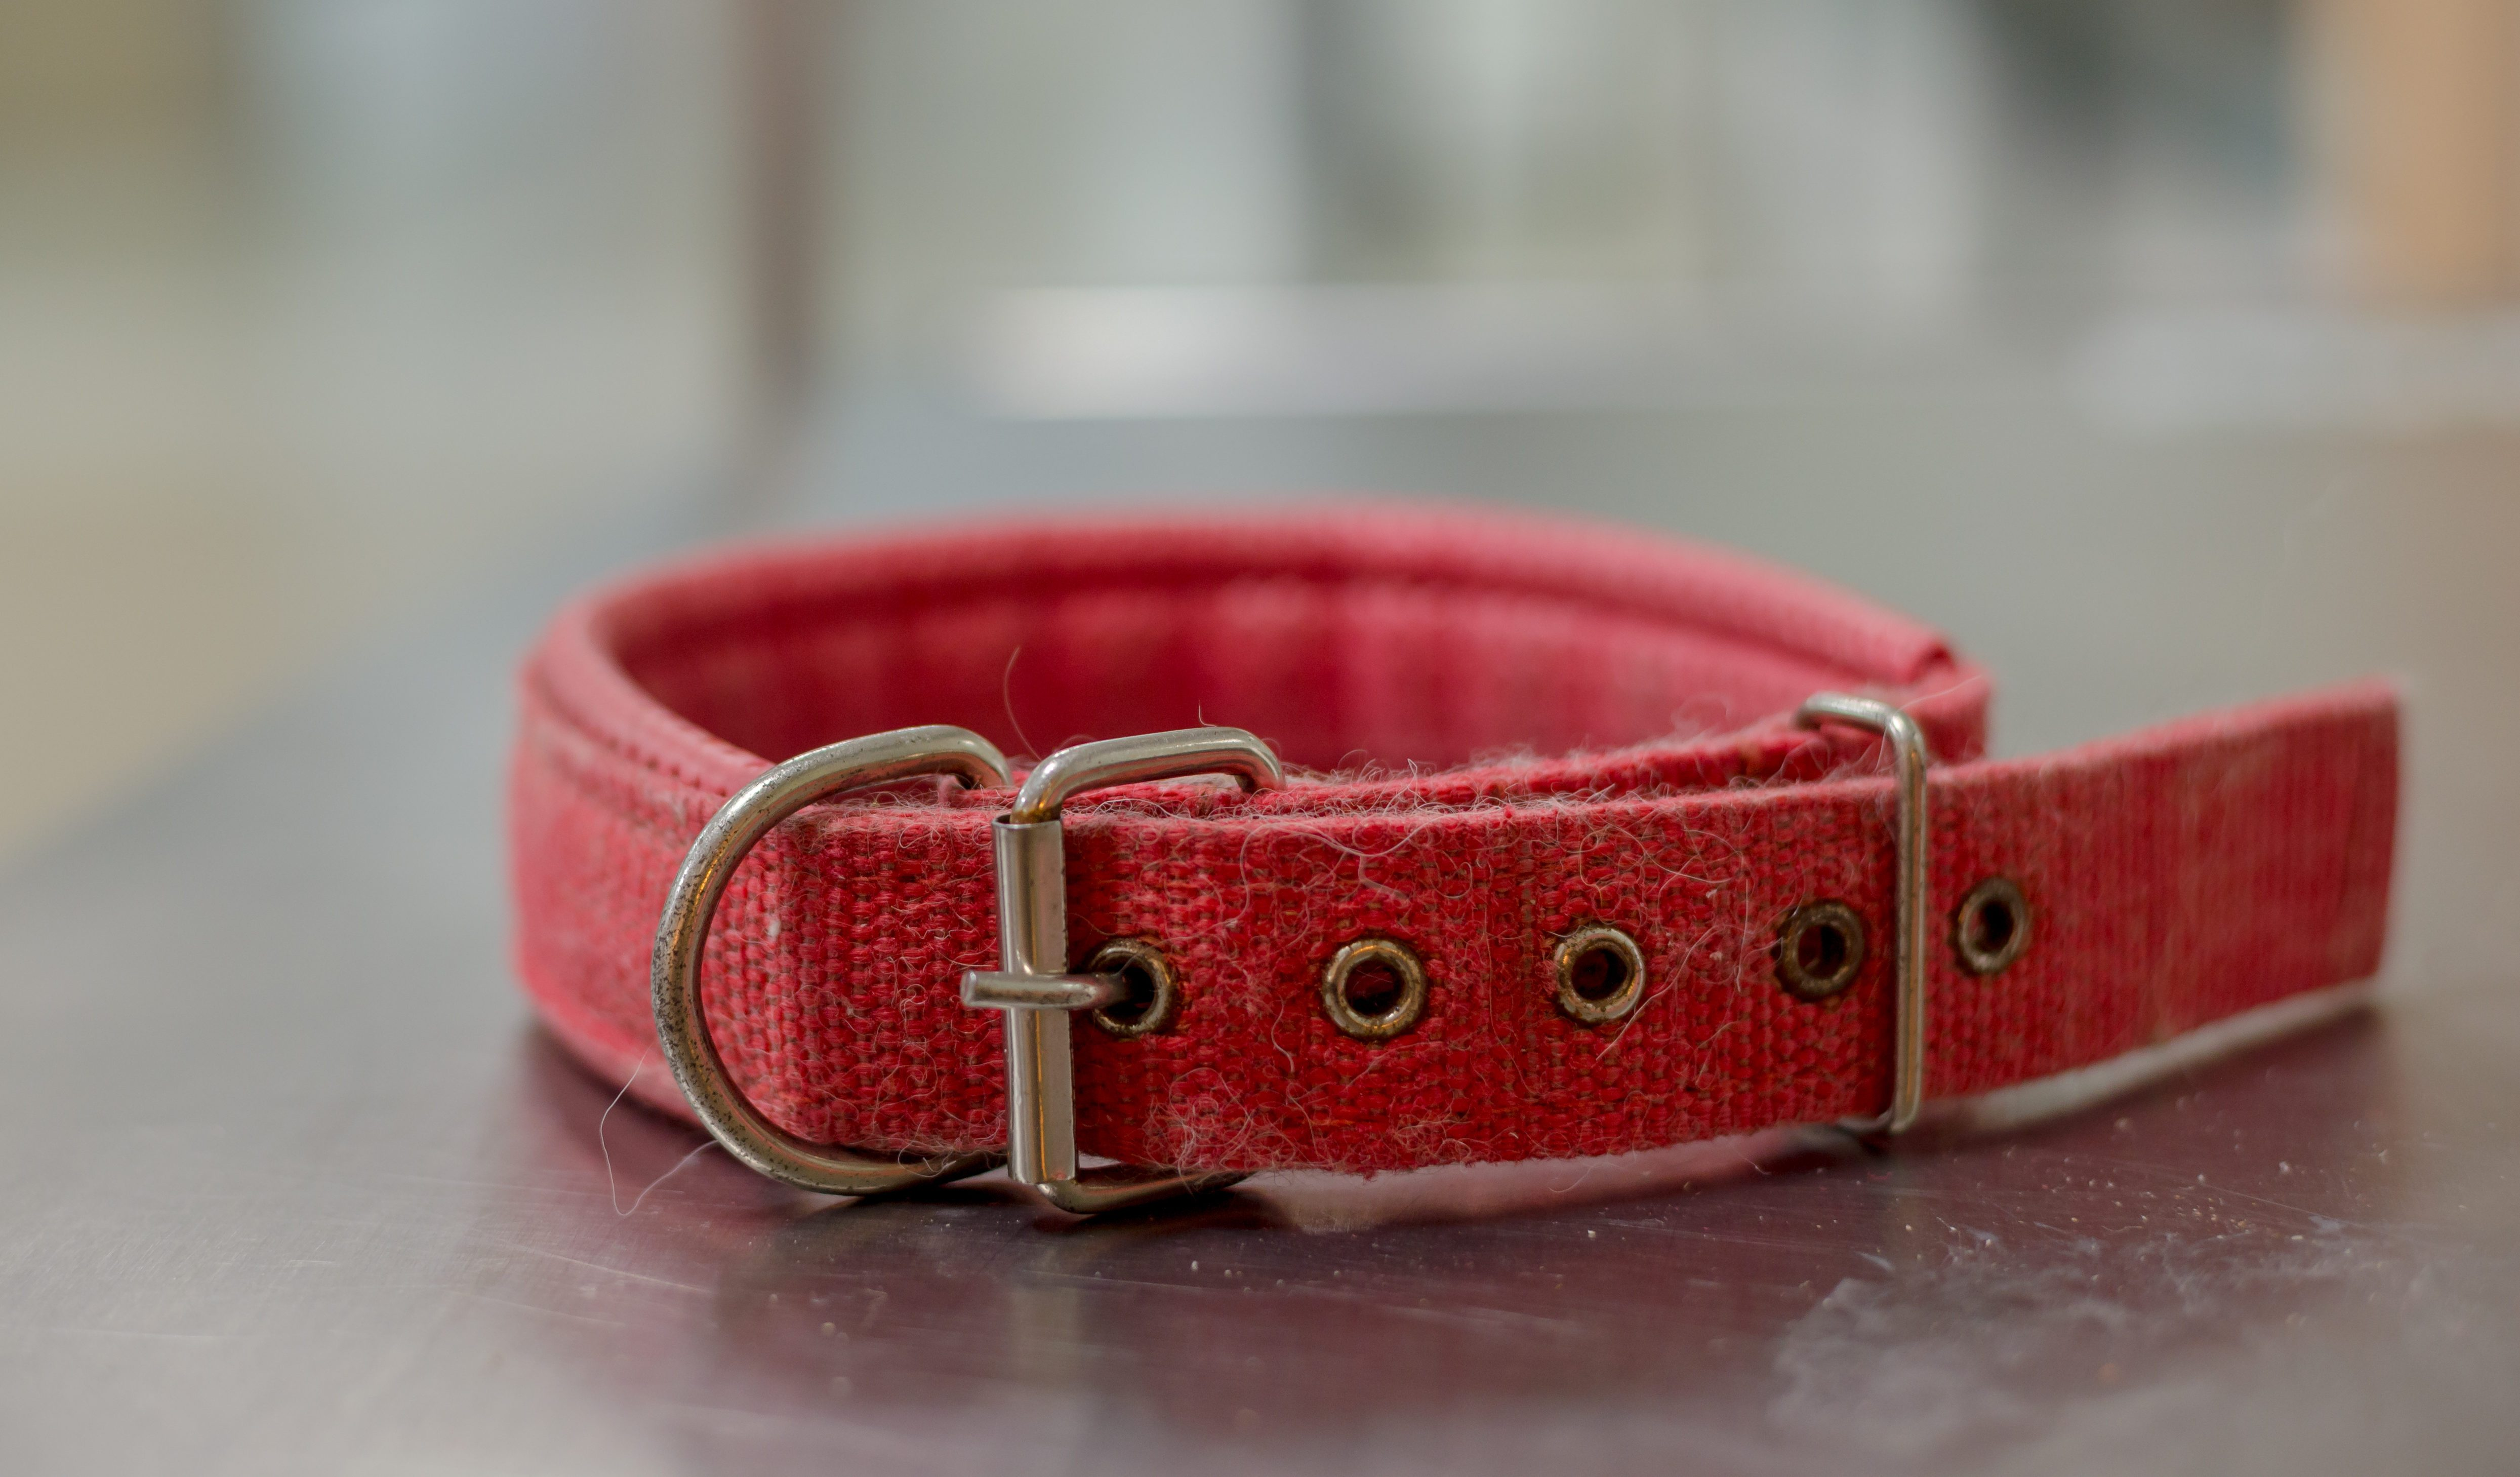 A red dog collar on the stainless steel table In animal hospital